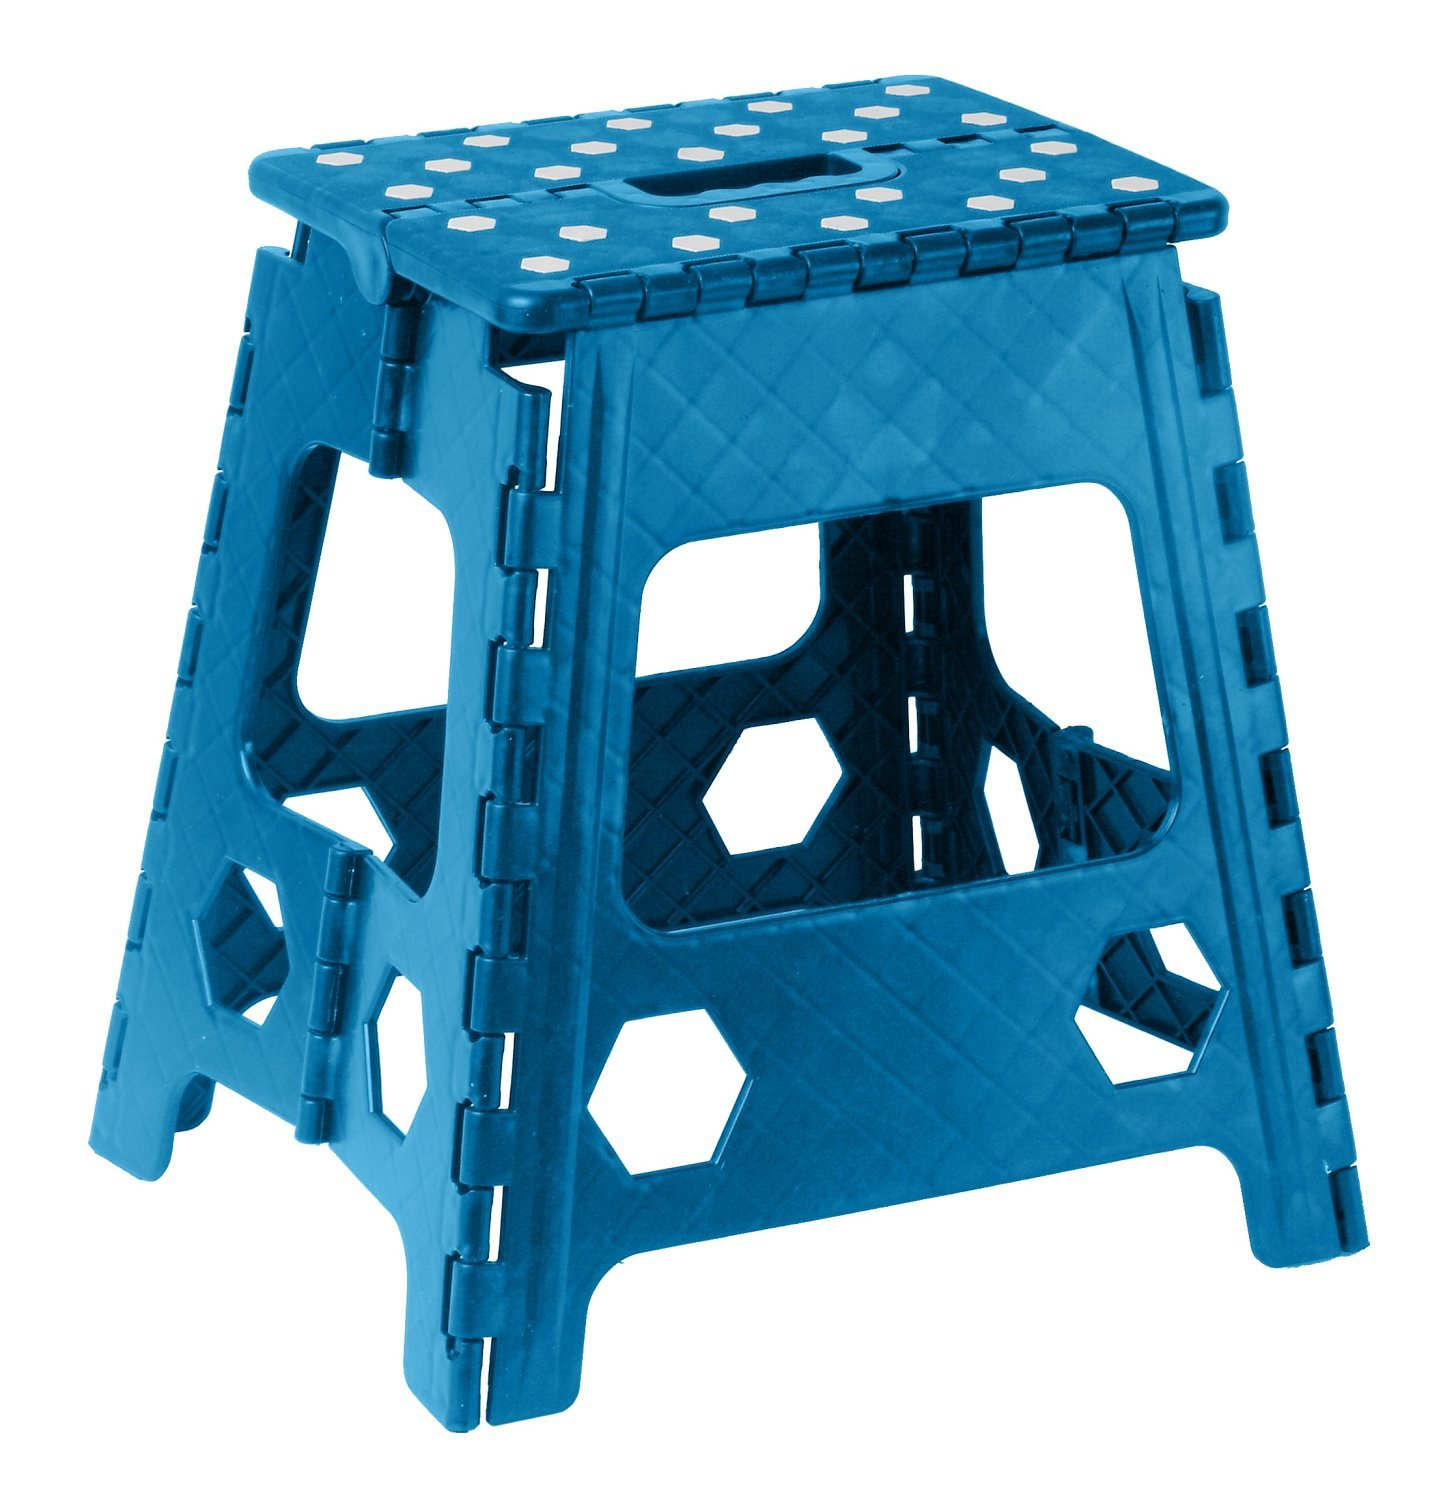 Folding Step Stool 15 Inch with Anti Slip Dots (Blue) Superior Performance 307-333